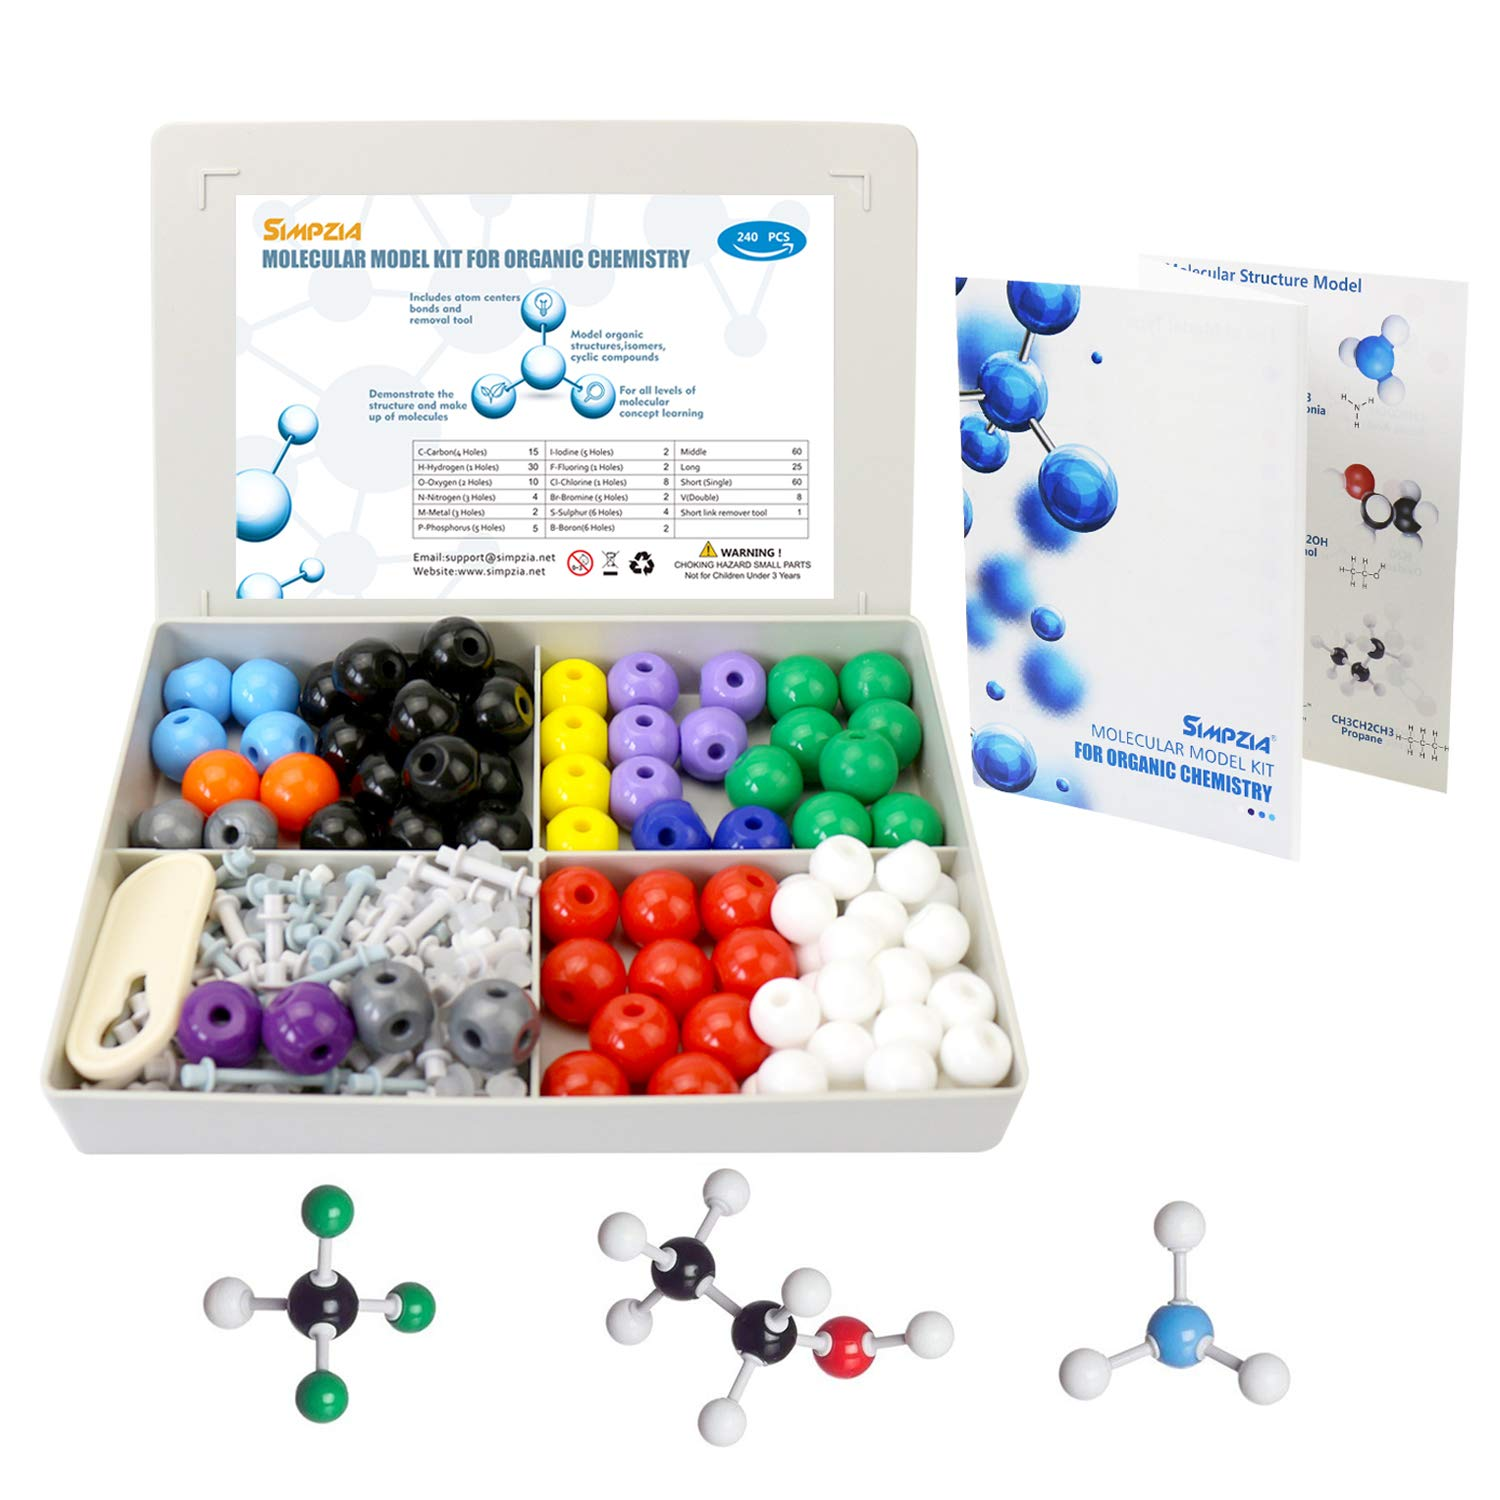 SIMPZIA 240 Pcs Organic Chemistry Model Kit  Molecular Model kit, Chemistry Organic and Inorganic Modeling Students Set with Manual & Atoms, Bonds for Students, Teachers & Scientists by SIMPZIA